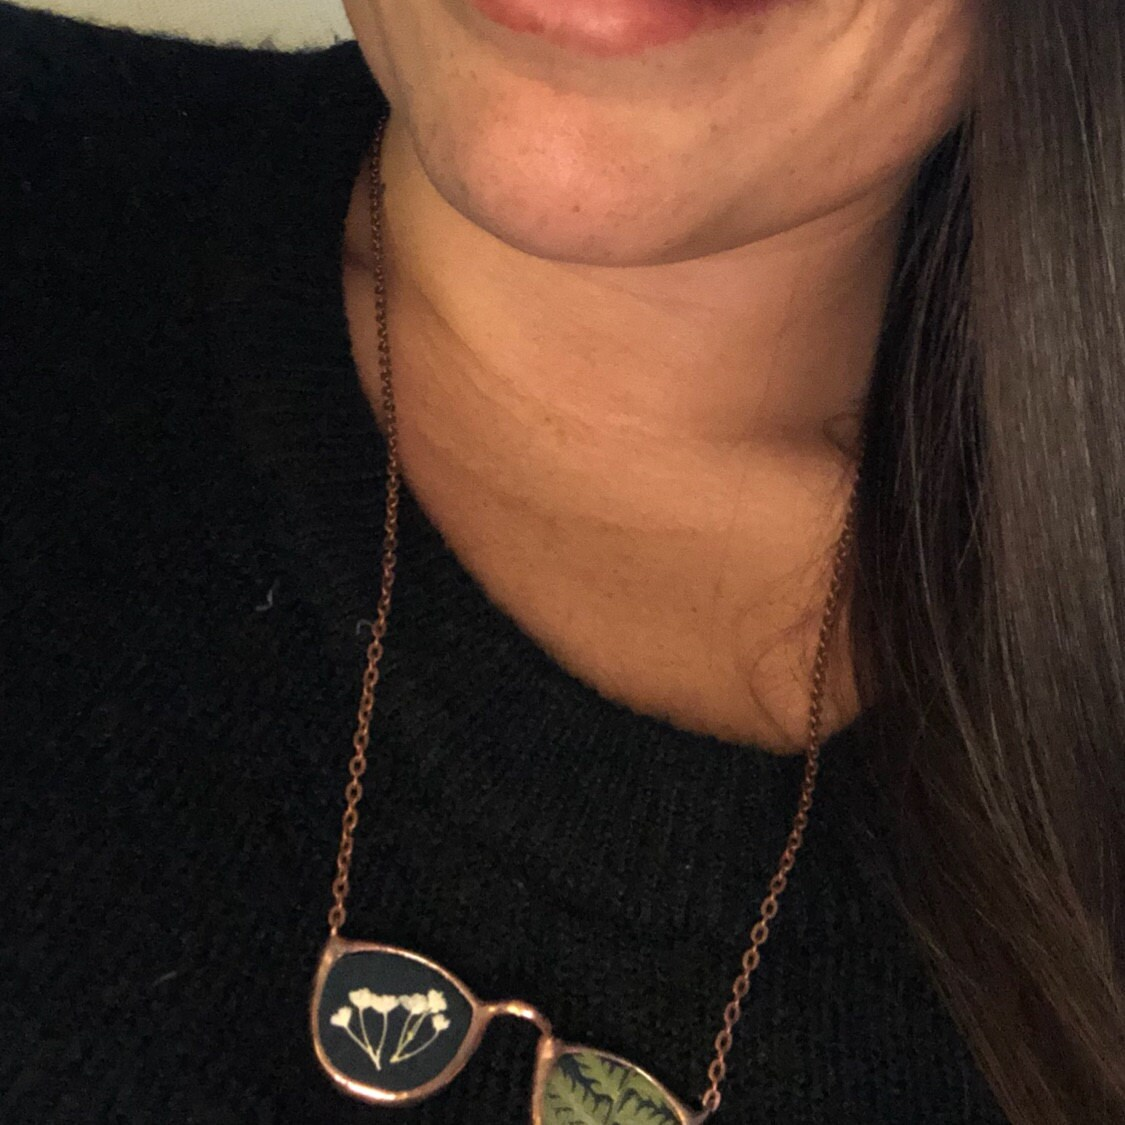 Jennifer Vasquez added a photo of their purchase